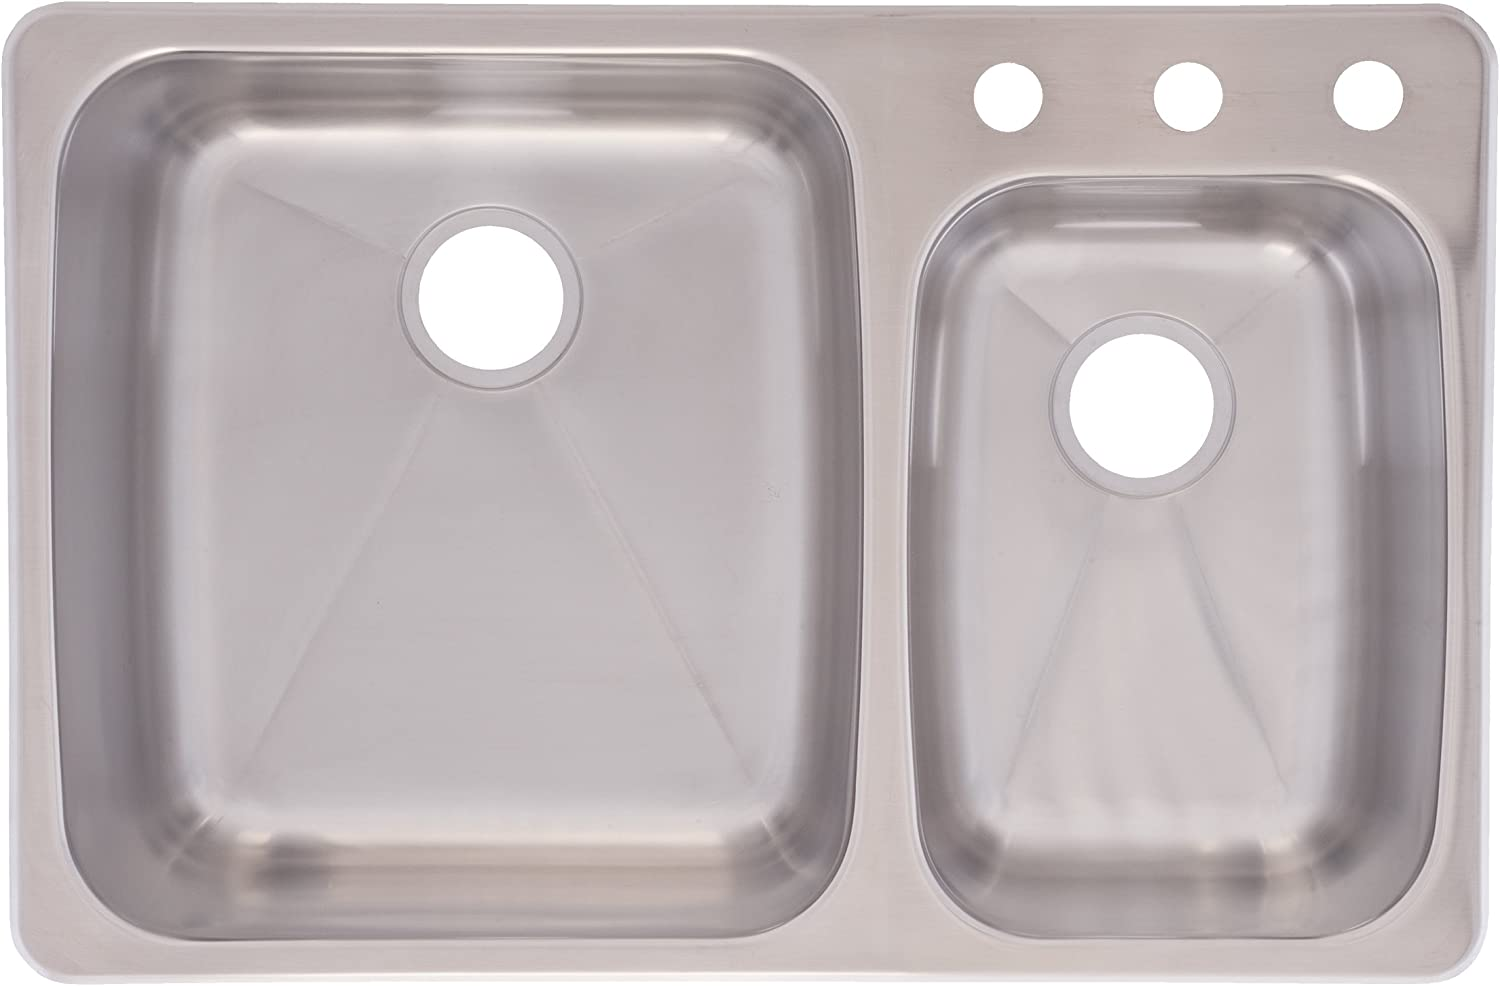 Franke C2233R 9 Stainless Steel 33 1 4x 22in. Dualmount Double Bowl Sink